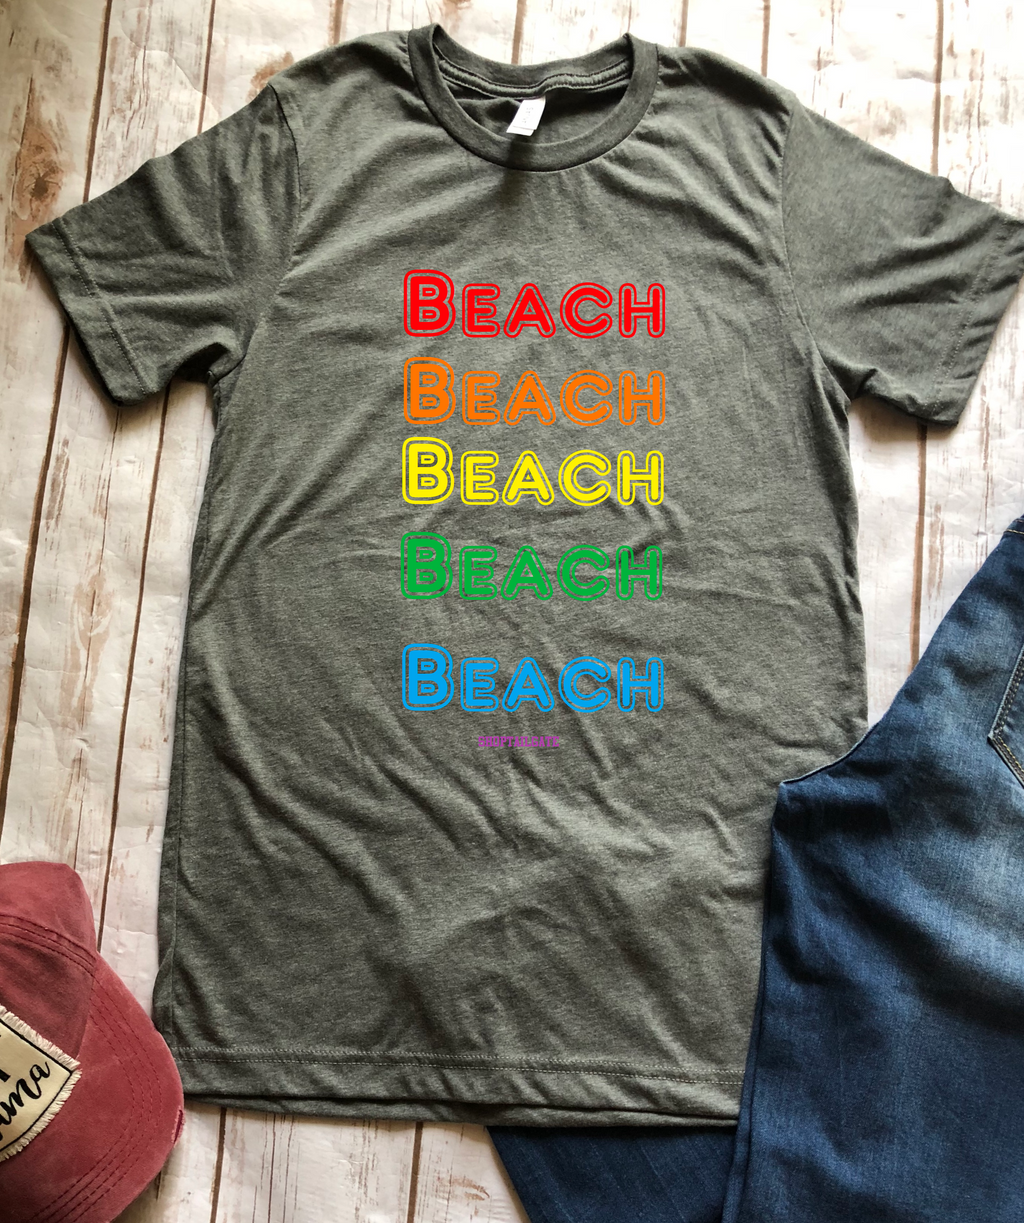 BEACH BEACH BEACH BEACH {multi colored}